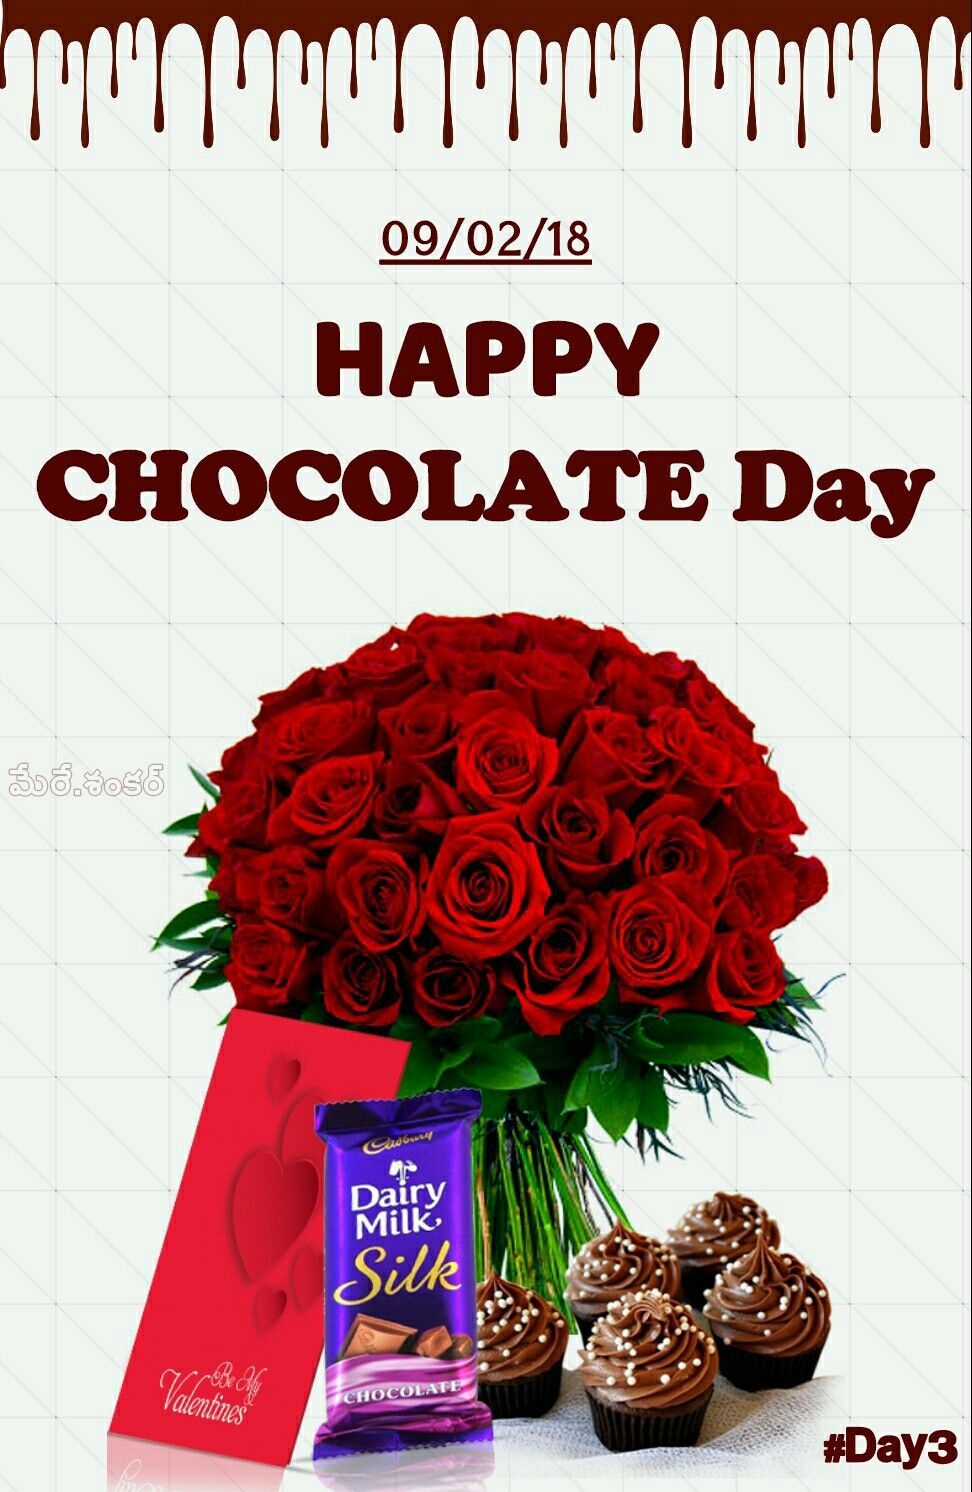 Pin By Marylin On Valentine S Day Sms Happy Chocolate Day Chocolate Day Happy Valentine Happy chocolate day images 2021 dairy